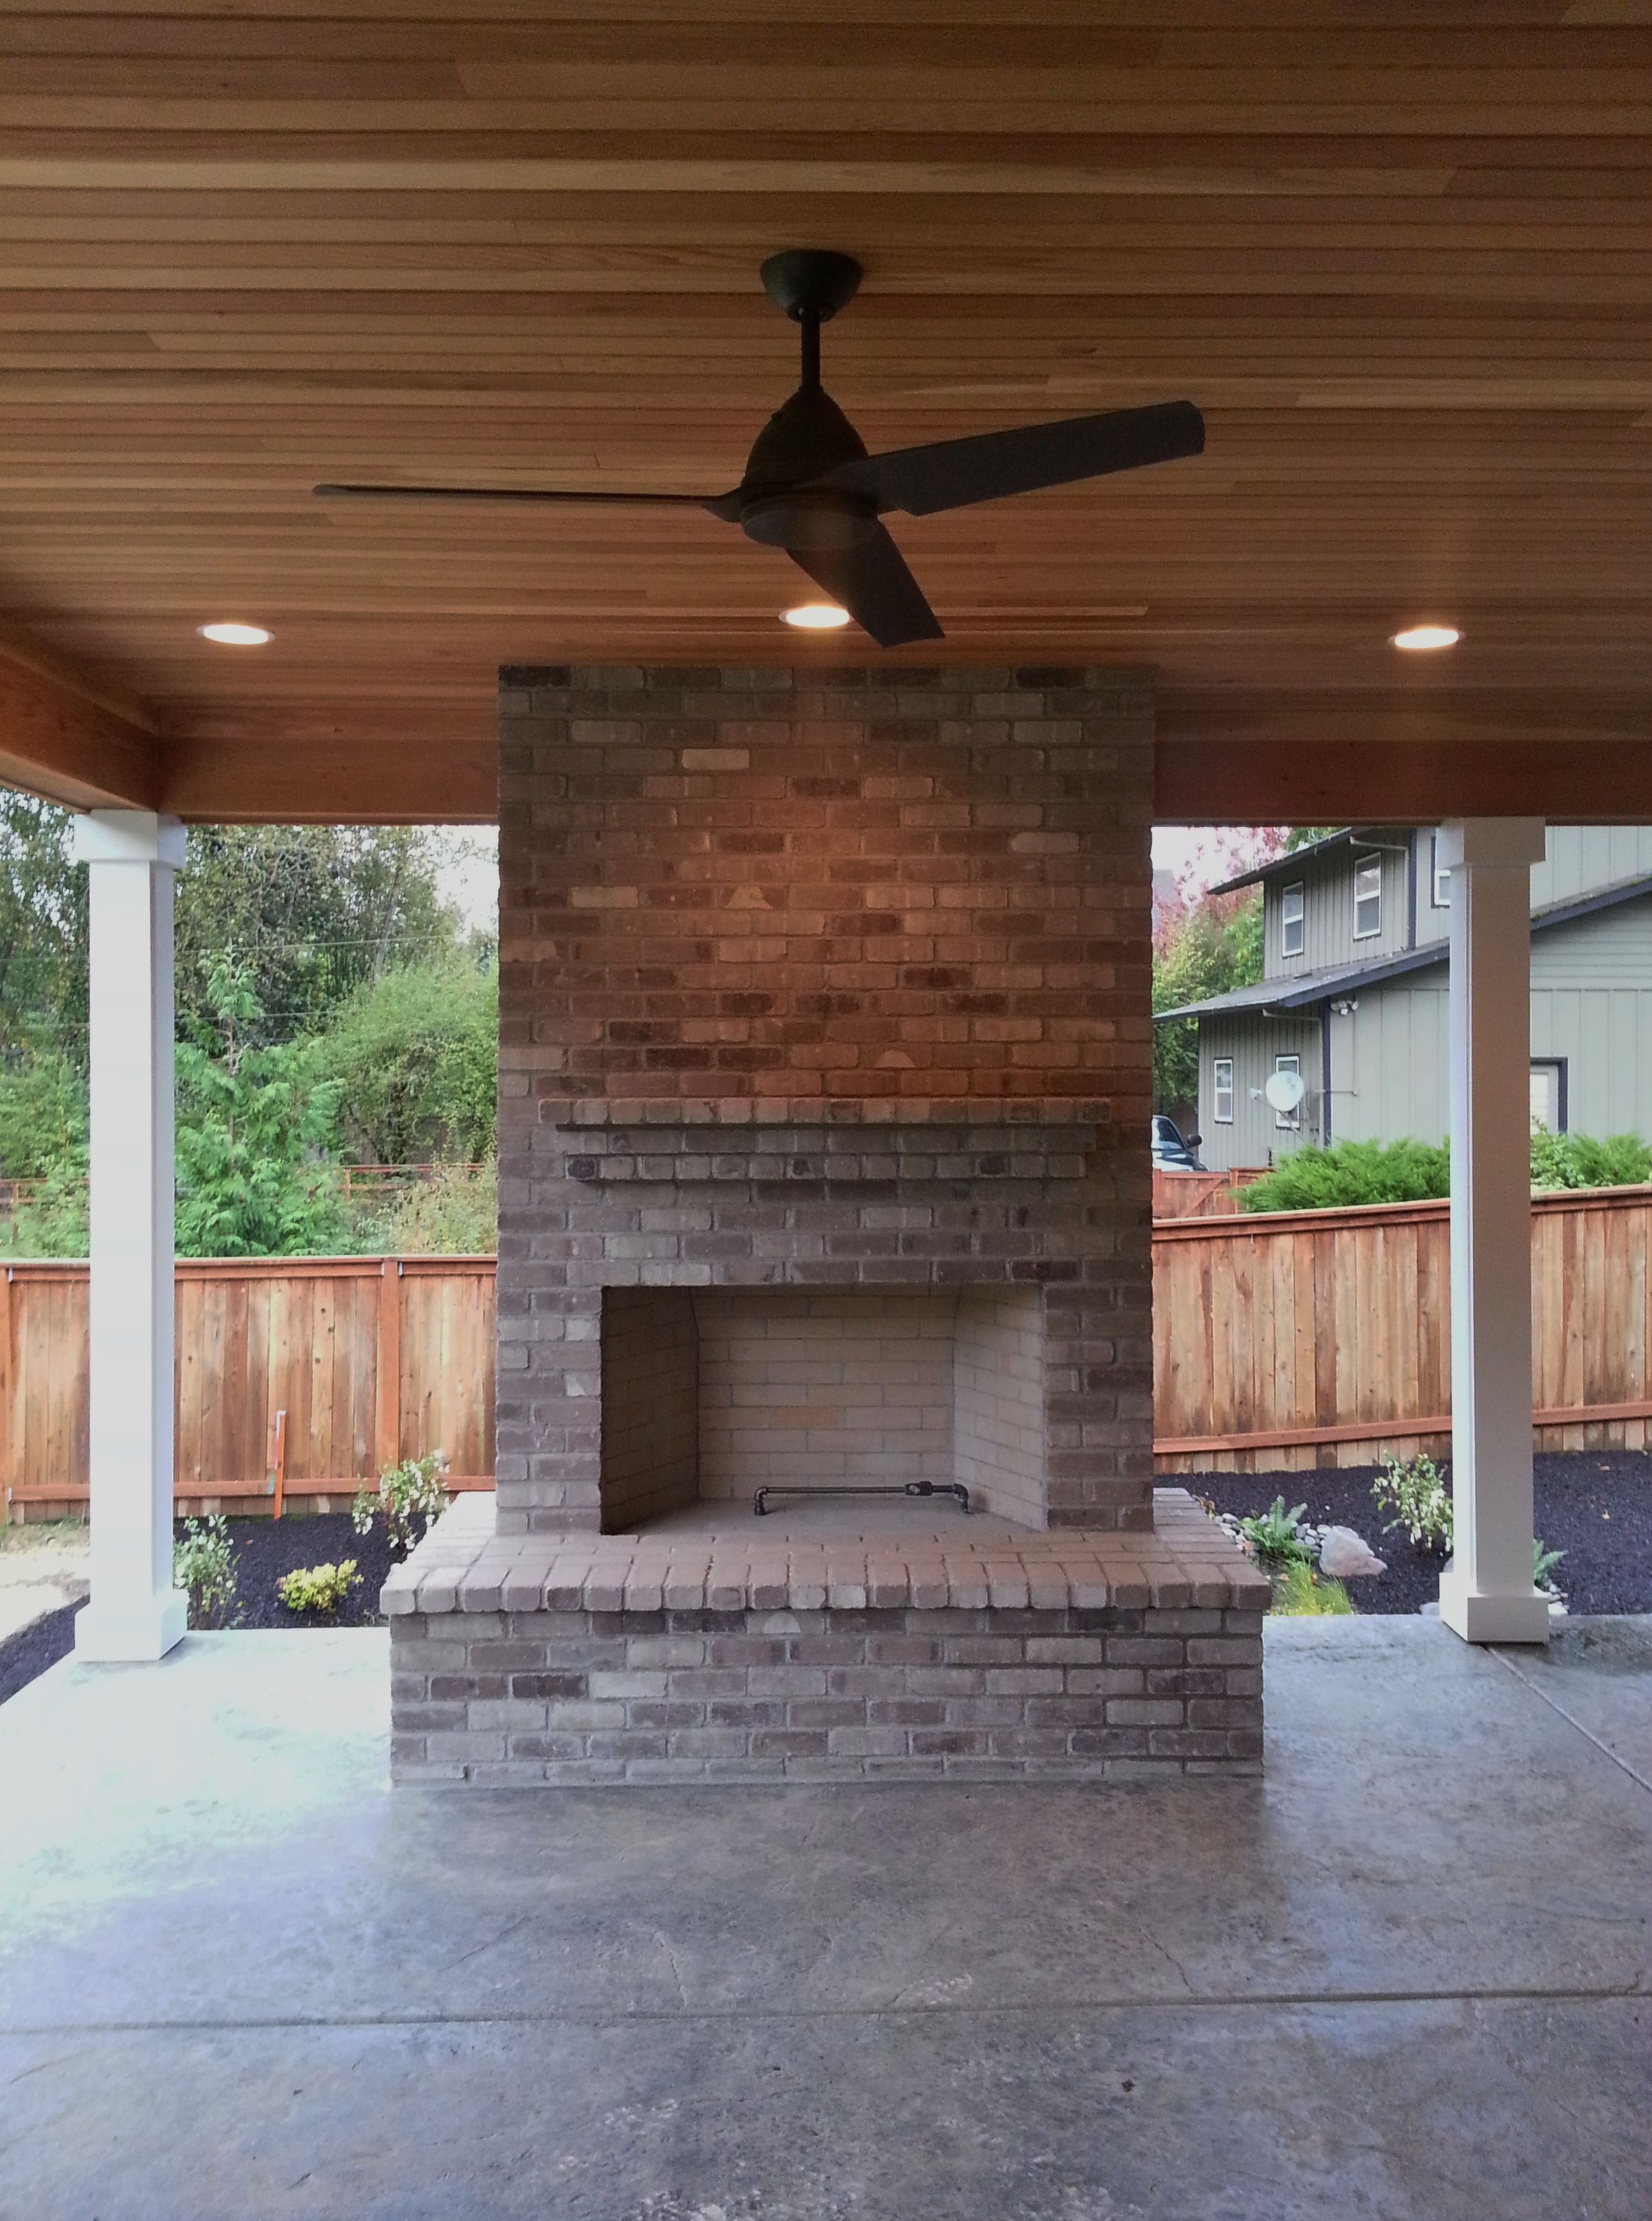 Outdoor Fireplace Brick Gray Brick Outdoor Living